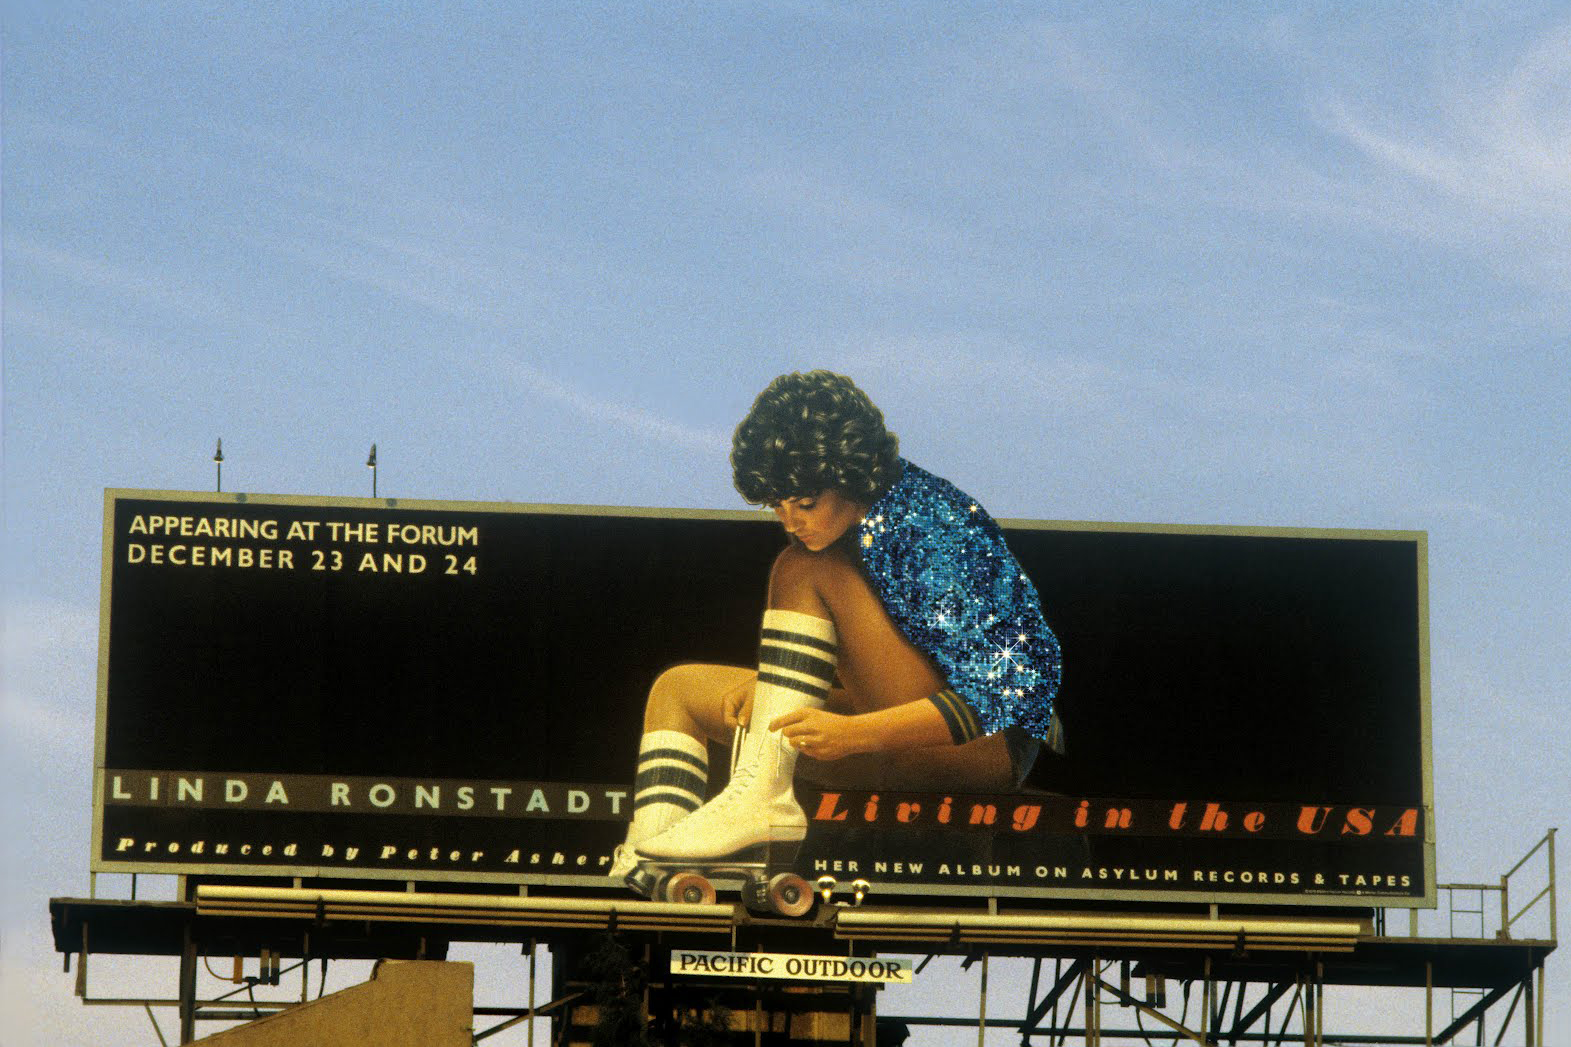 Linda Ronstadt's Living in the USA, 1978 (Asylum Records), art direction by Kosh, photo by Jim Shea.